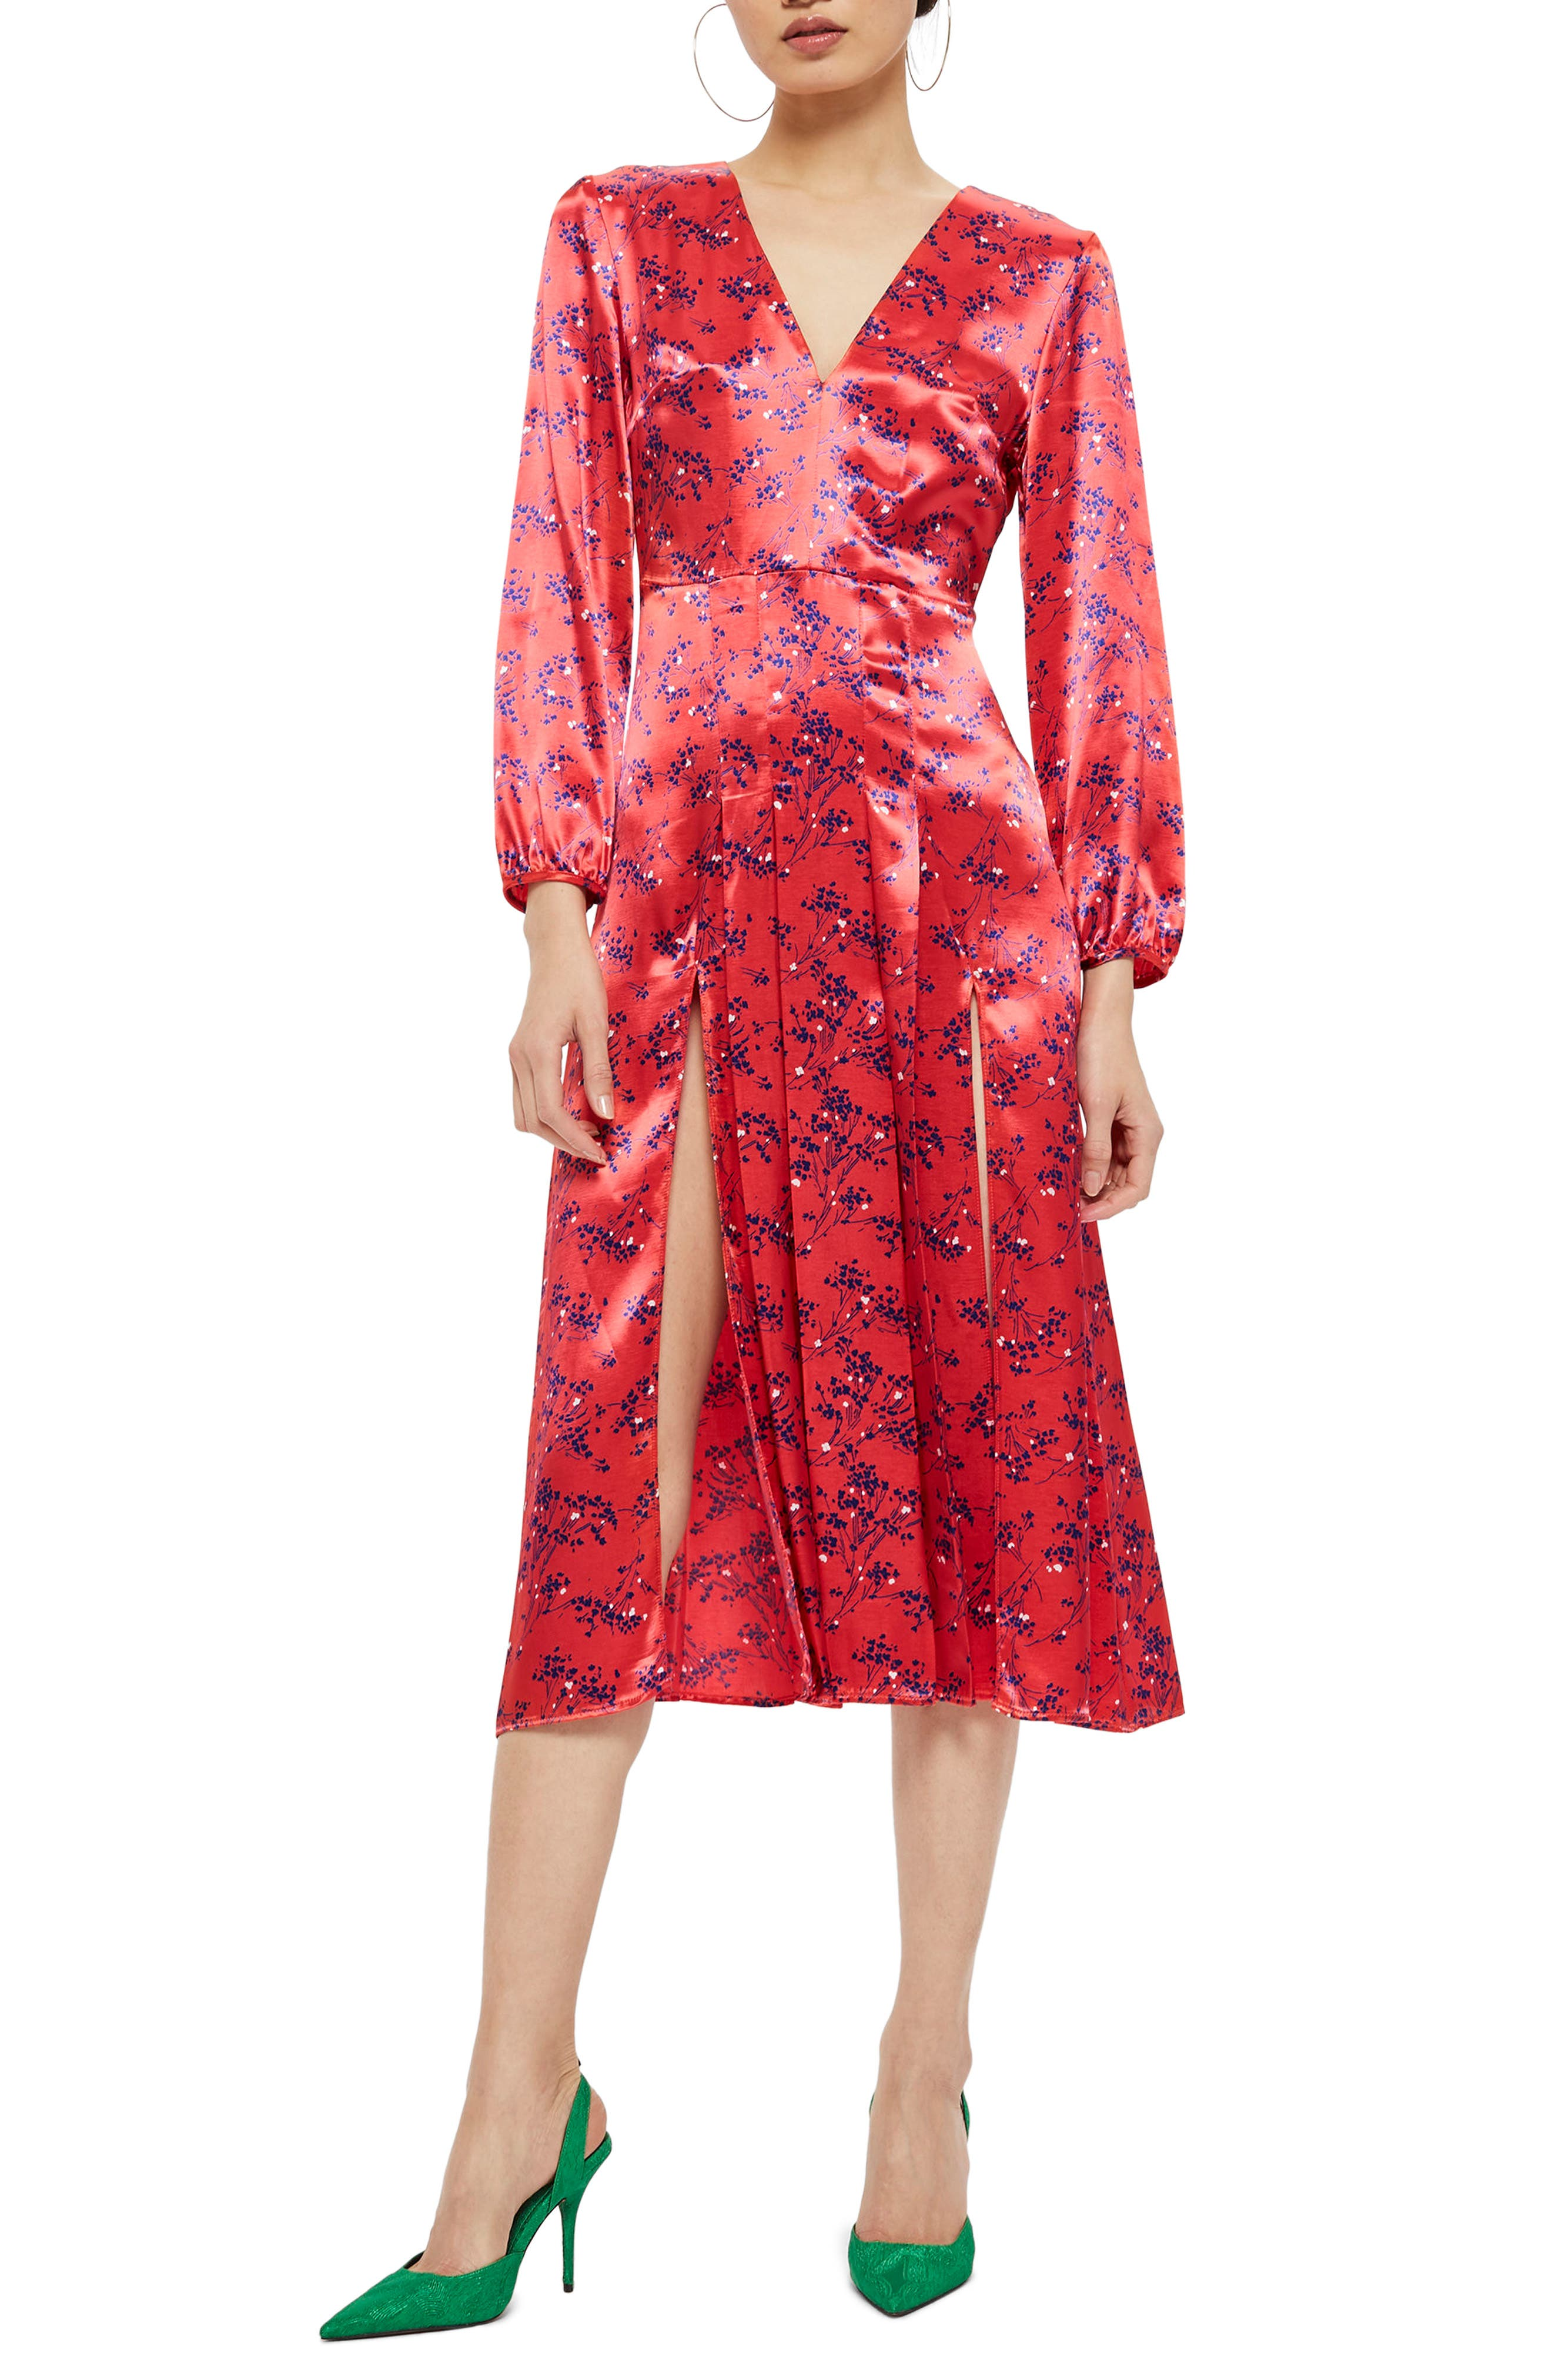 Wispy Floral Print Midi Dress,                             Main thumbnail 1, color,                             Red